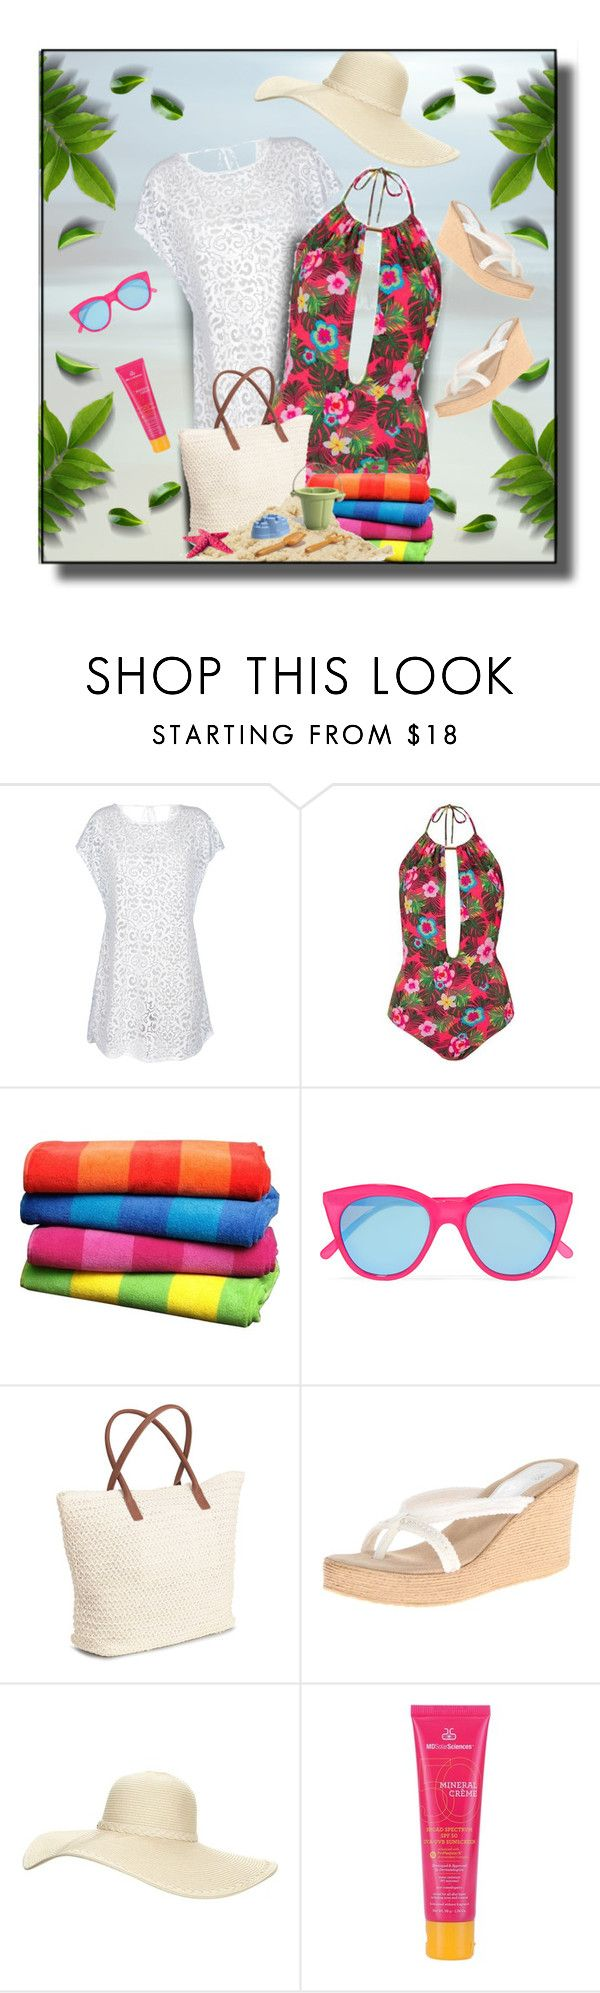 """""""Swimwear"""" by daiscat ❤ liked on Polyvore featuring Rene, Topshop, Le Specs, H&M, Sbicca, Reger by Janet Reger and MDSolarSciences"""